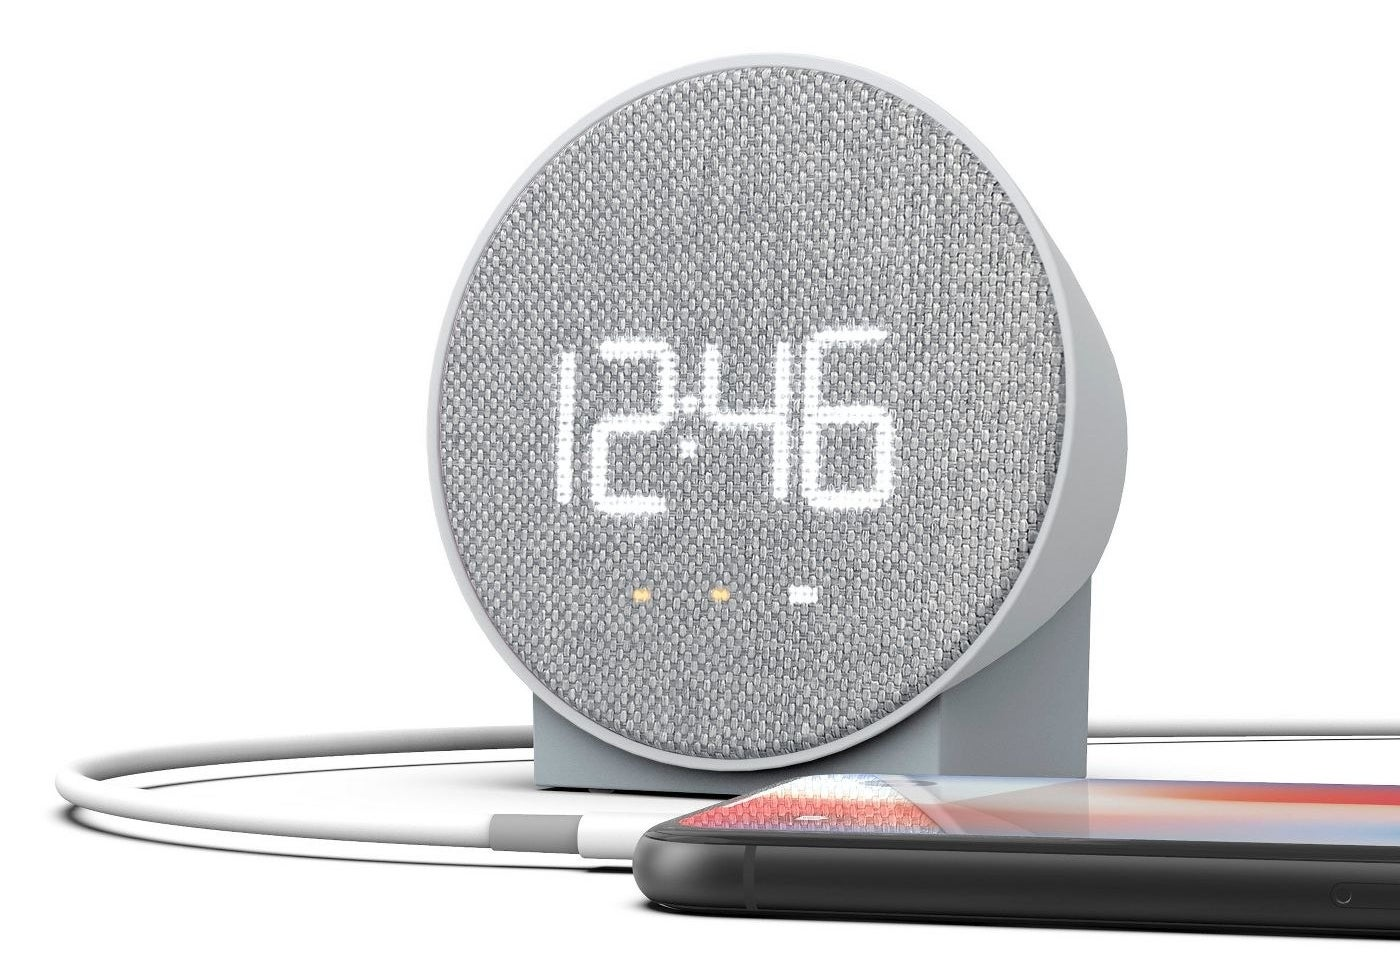 A small grey digital alarm clock